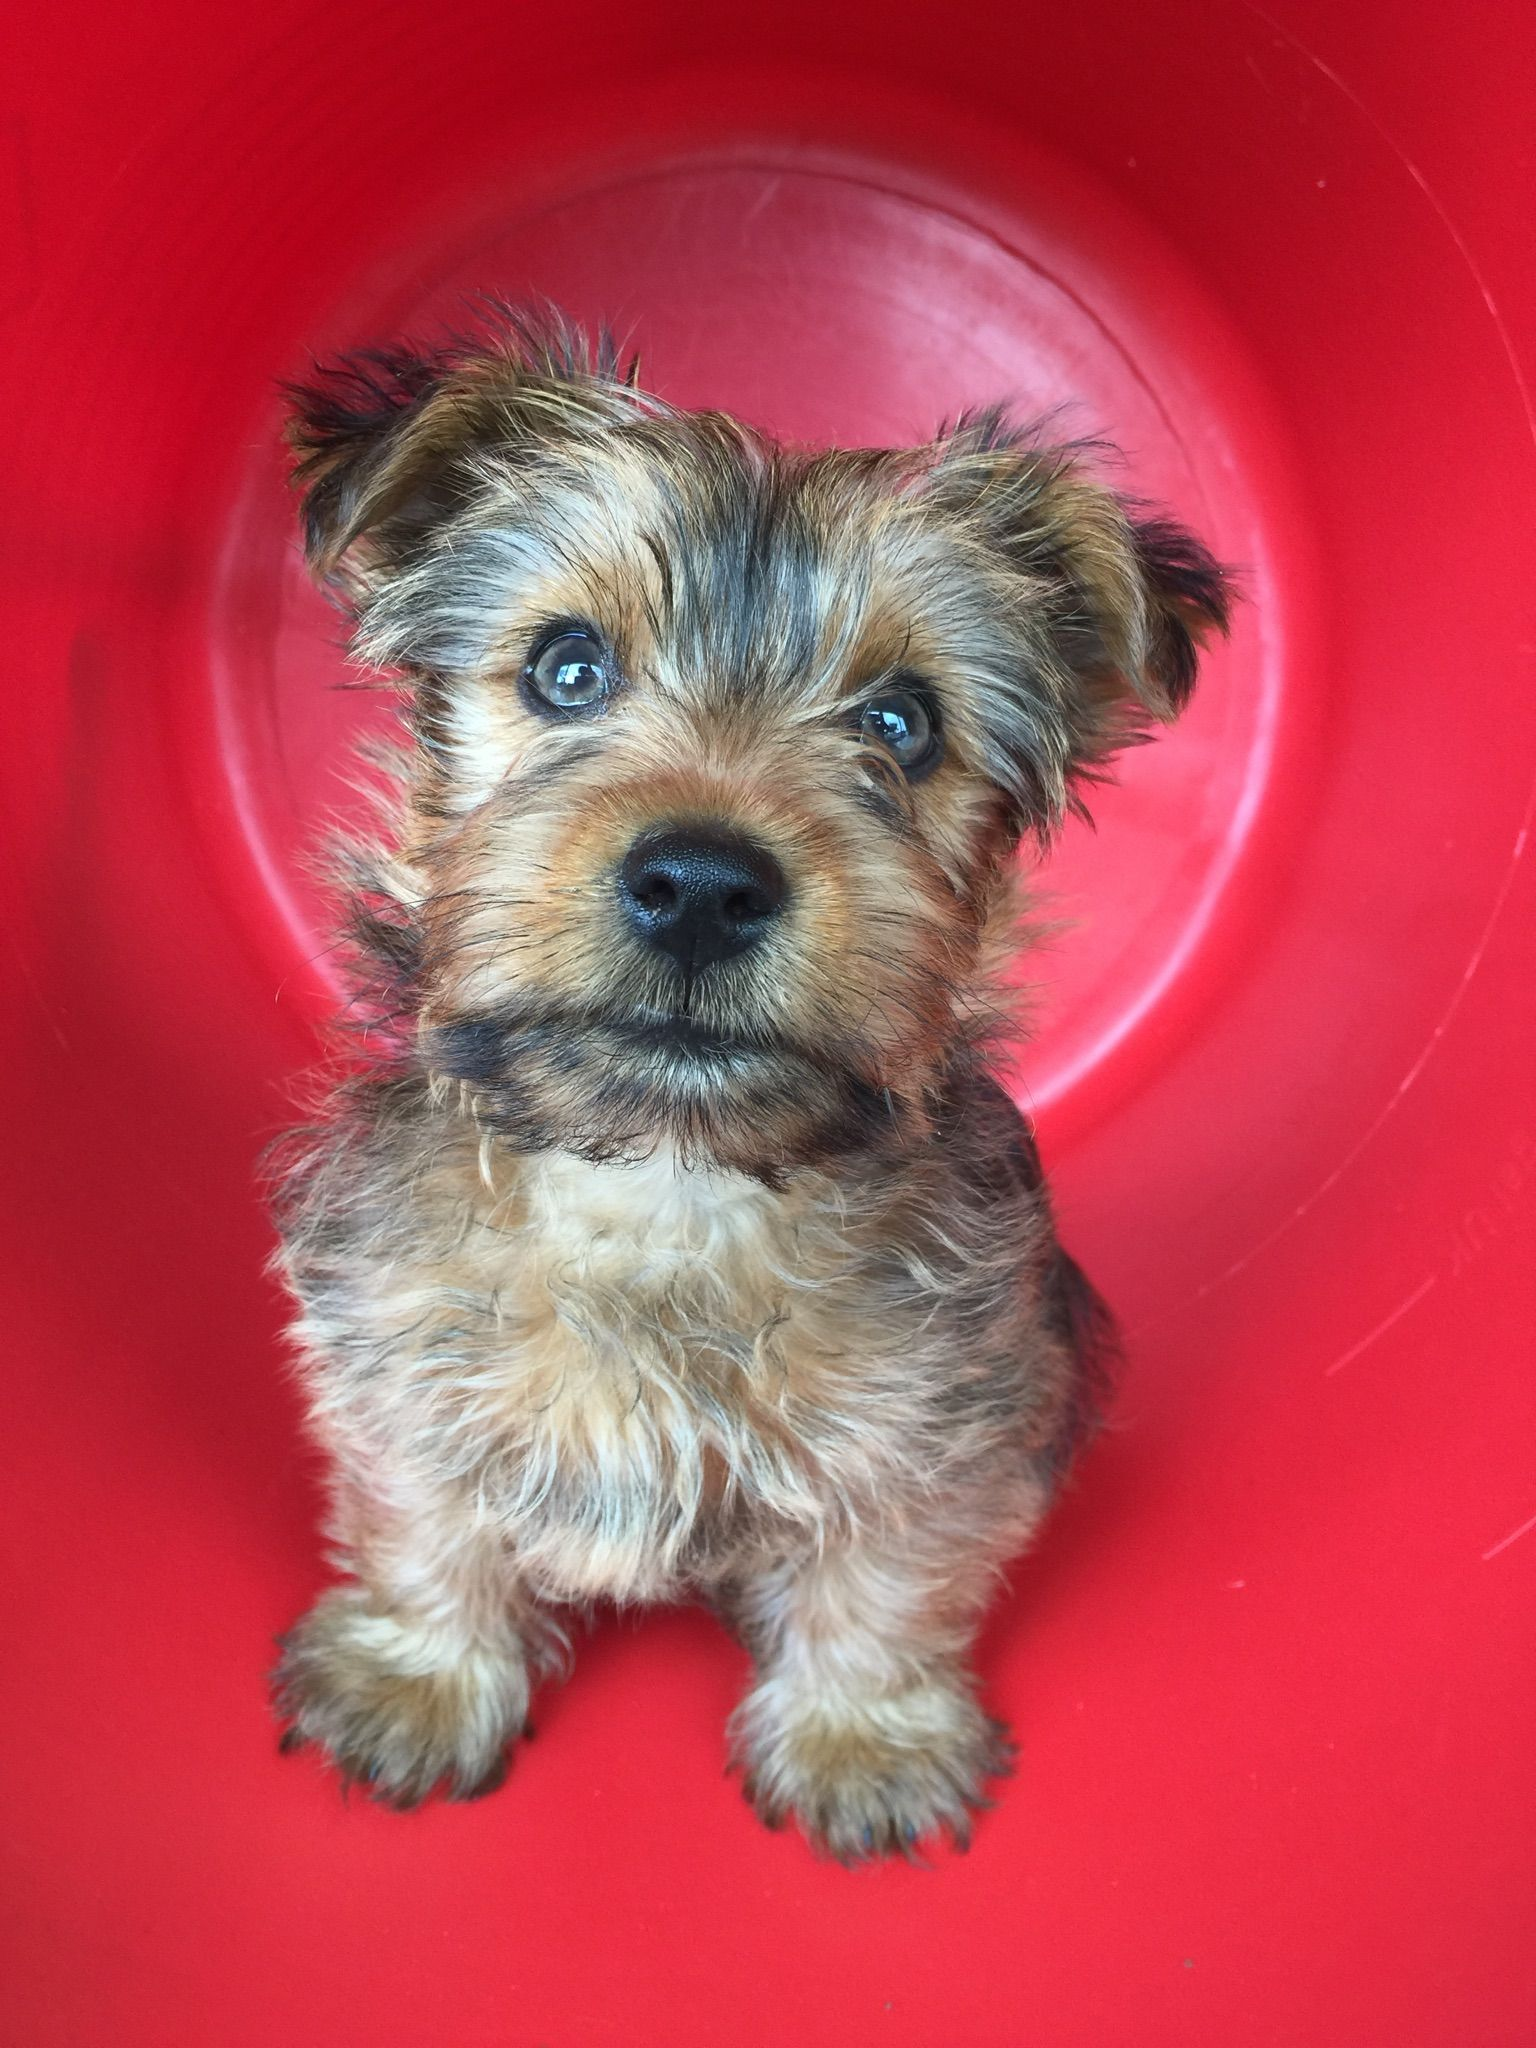 Our Puppy Yorkshire Terrier 3 Months Old Then Pet Photography